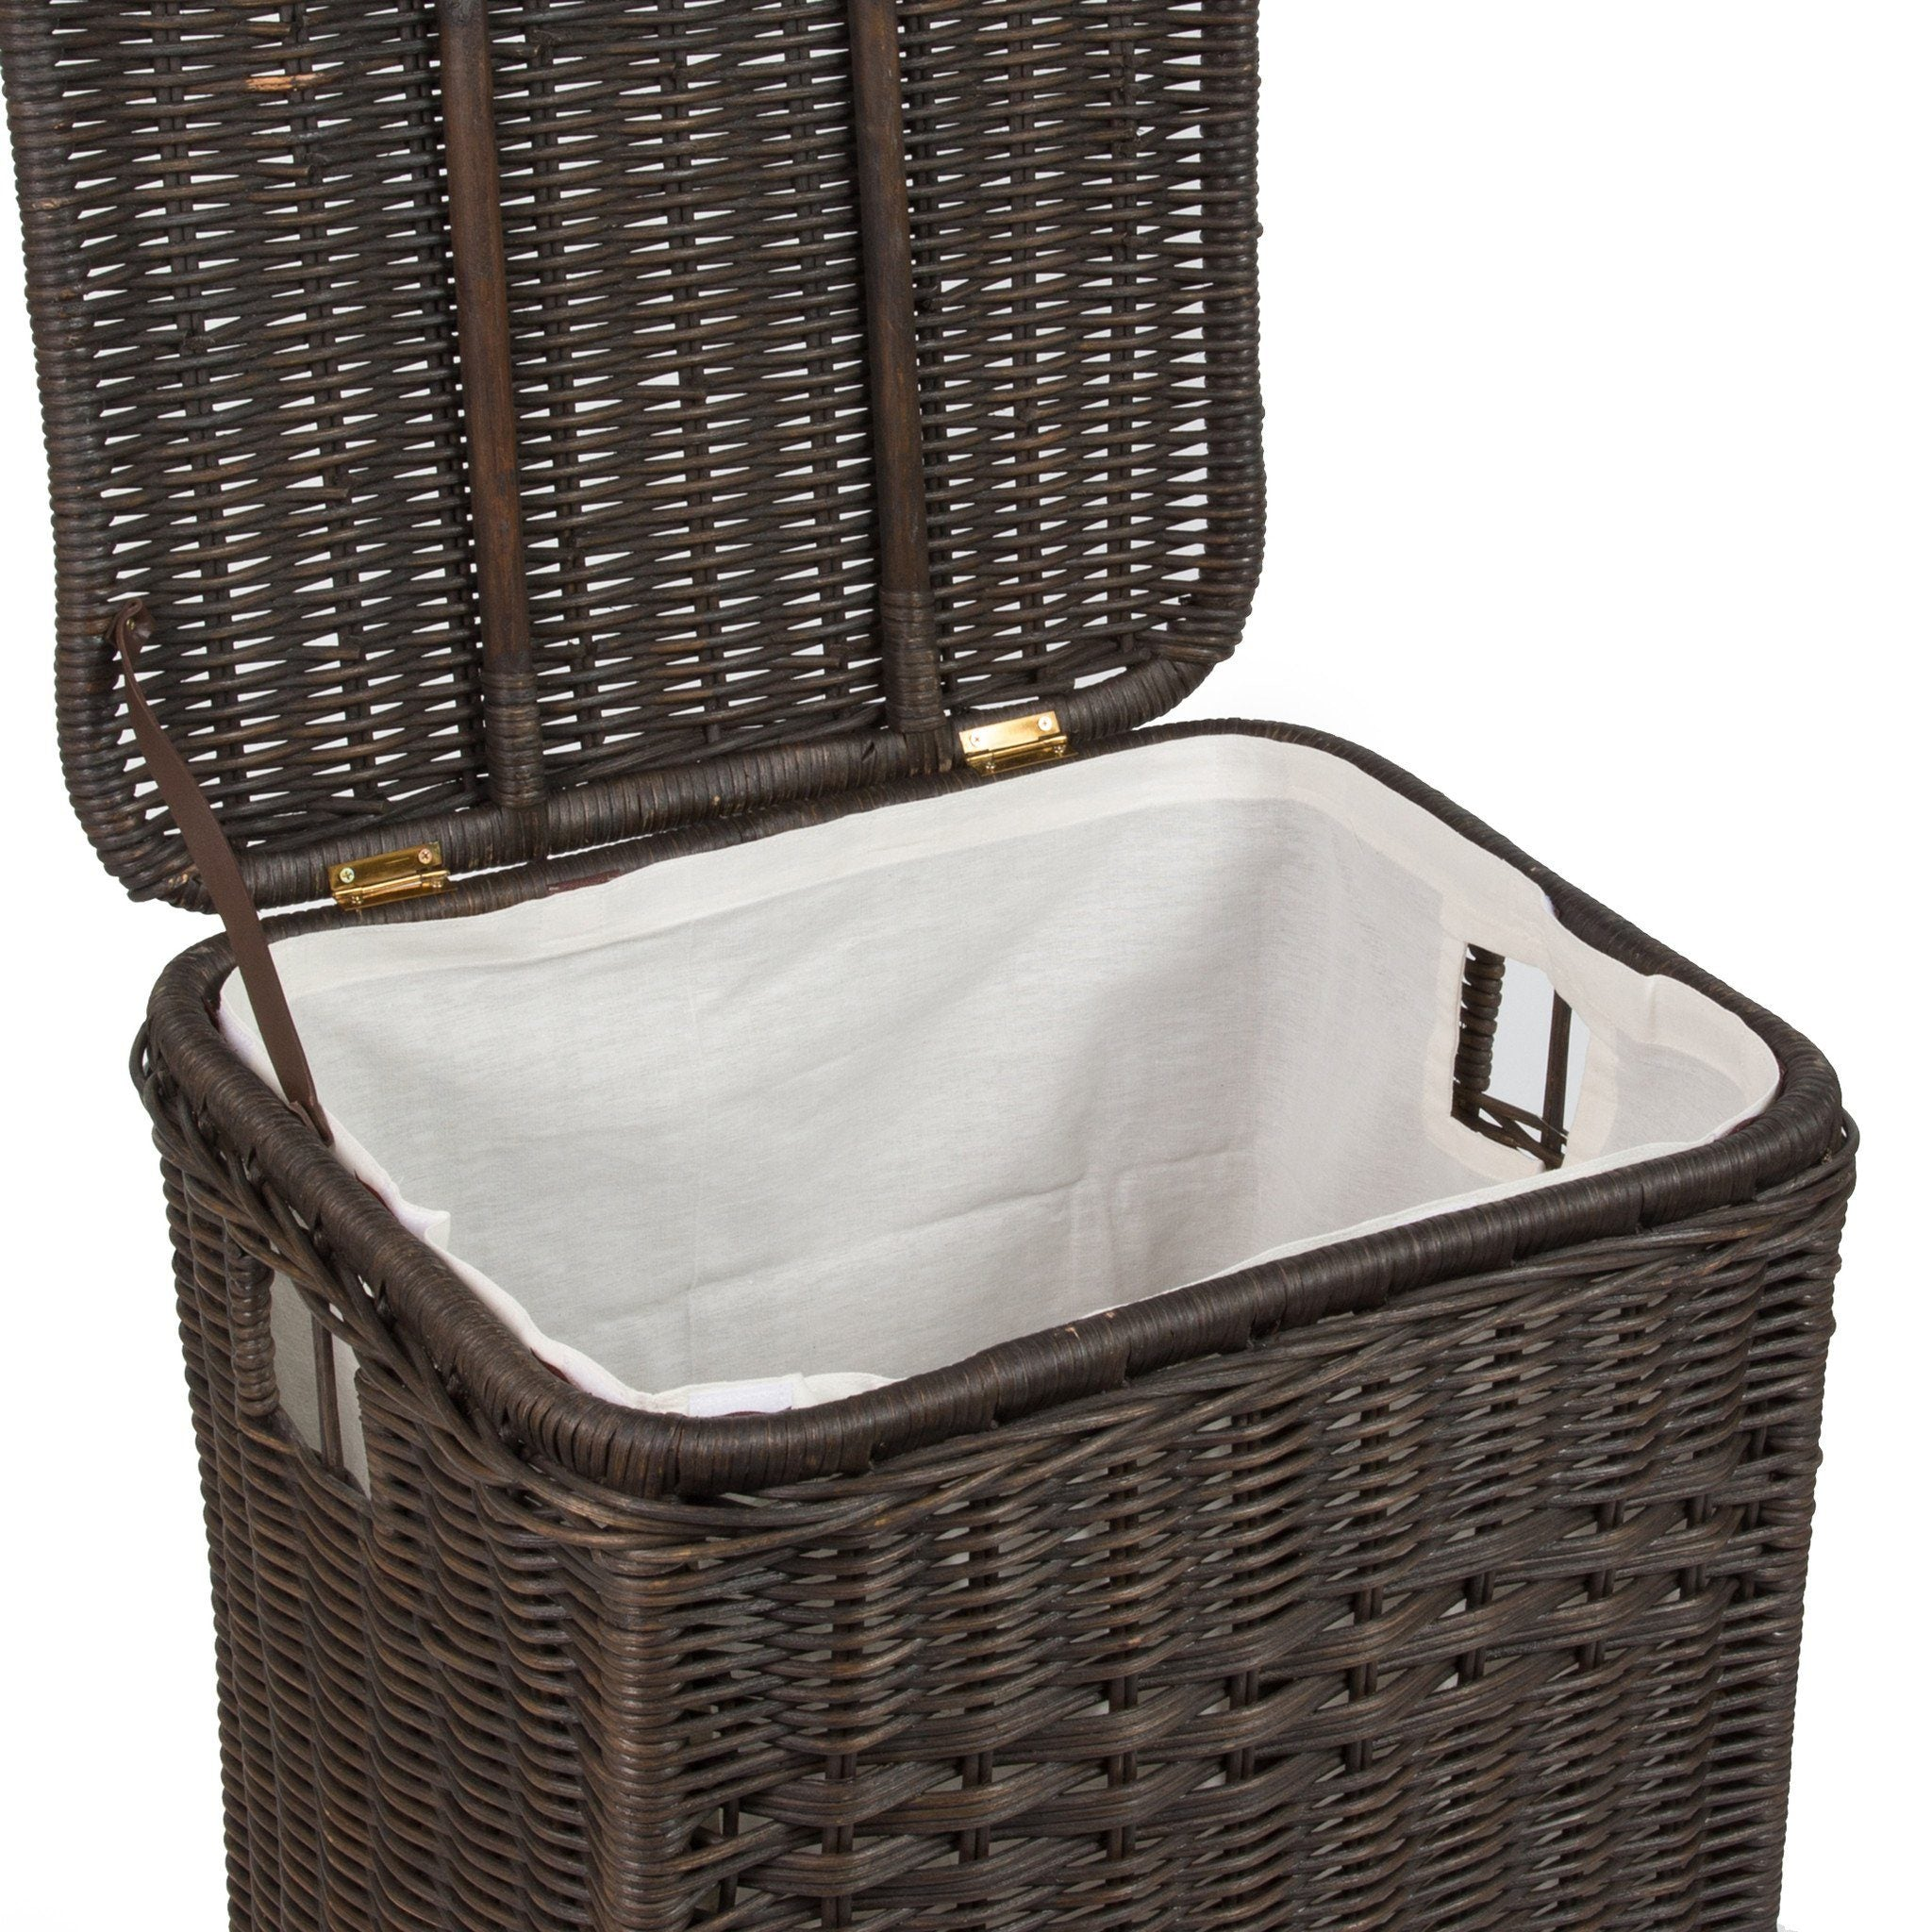 Lidded Wicker Laundry Hampers Storage The Basket Lady